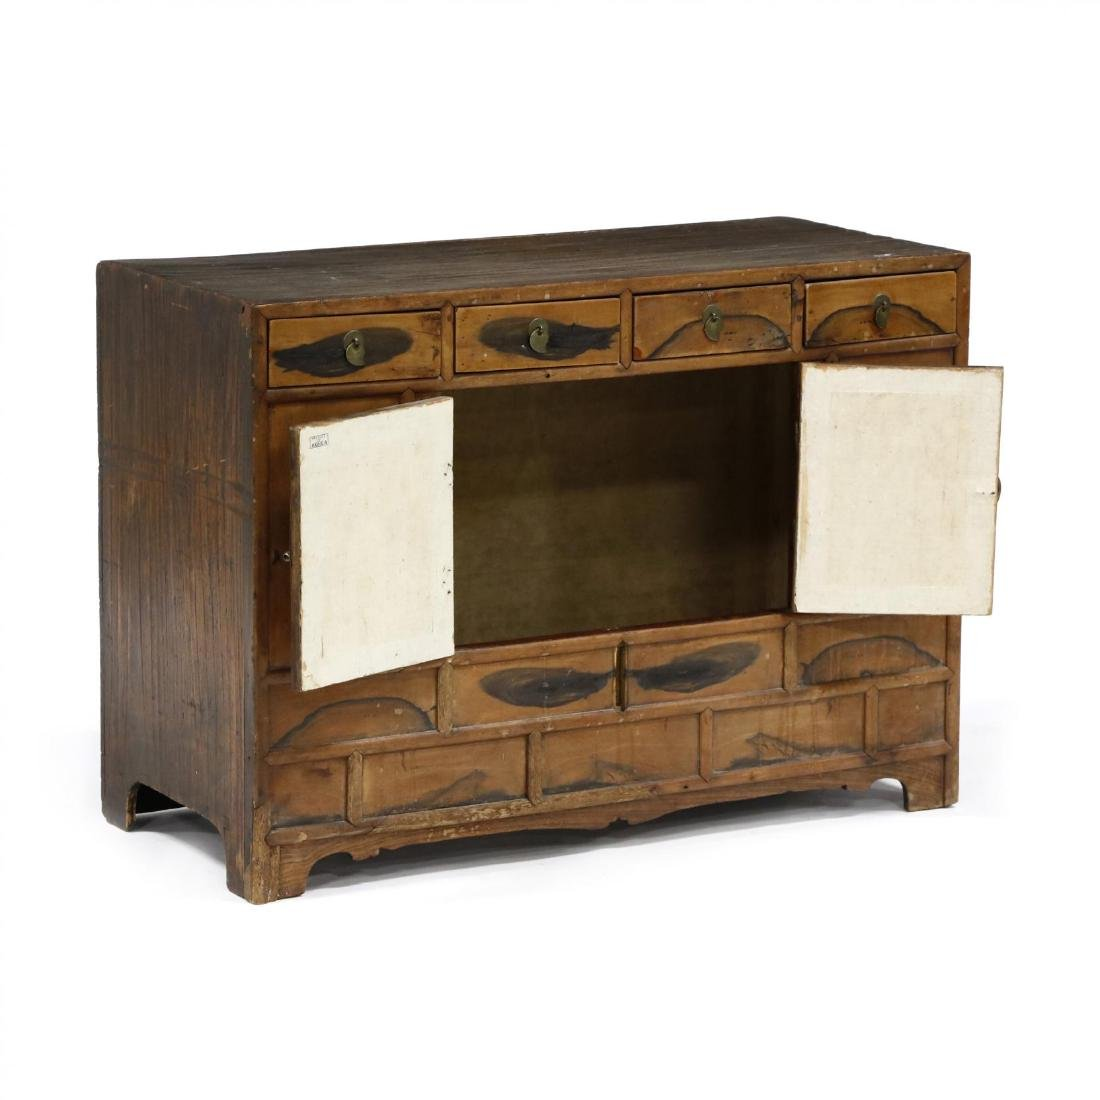 Antique Chinese Diminutive Cabinet - 2